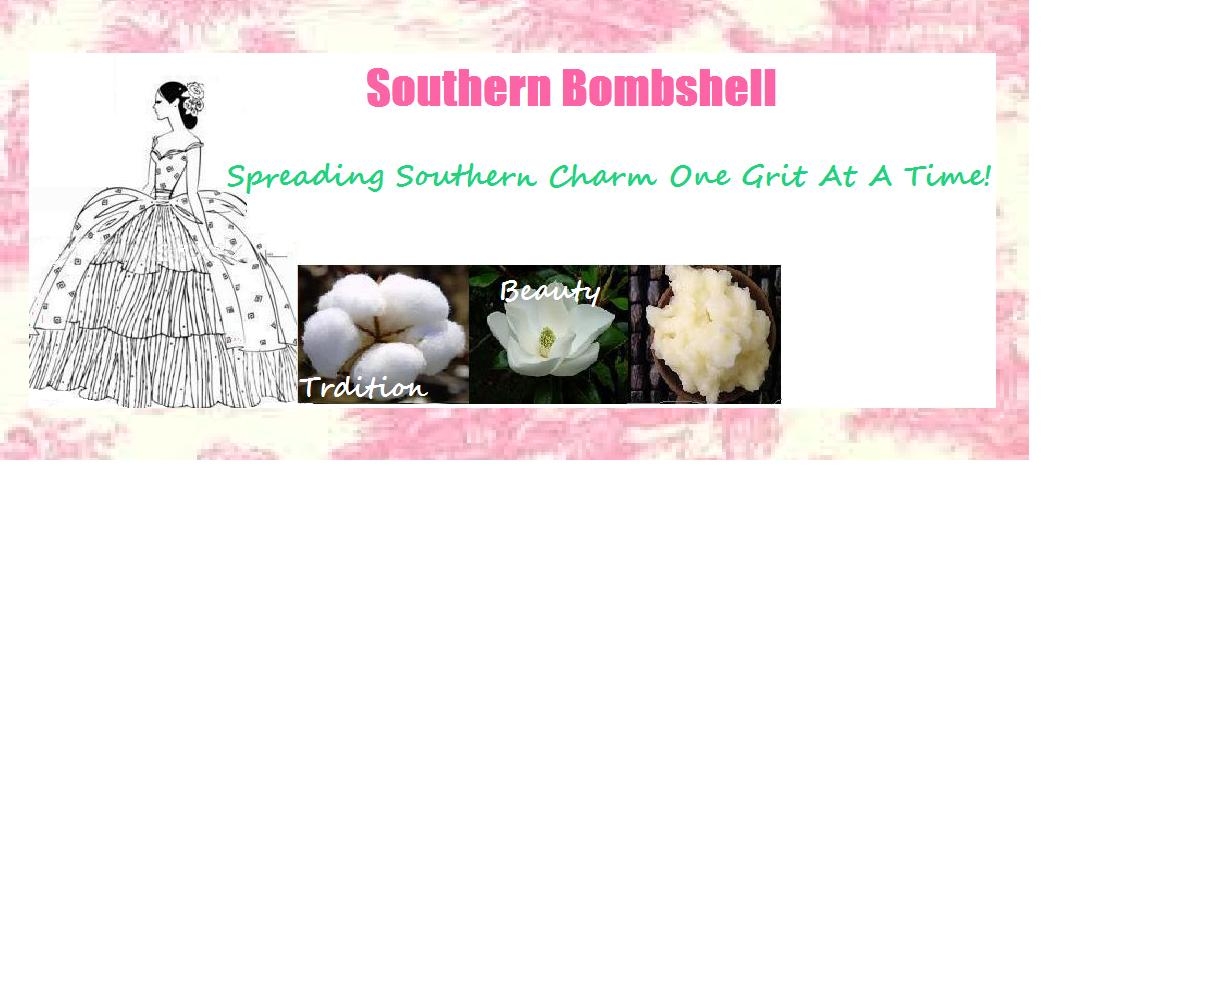 The Southern Bombshell Lives